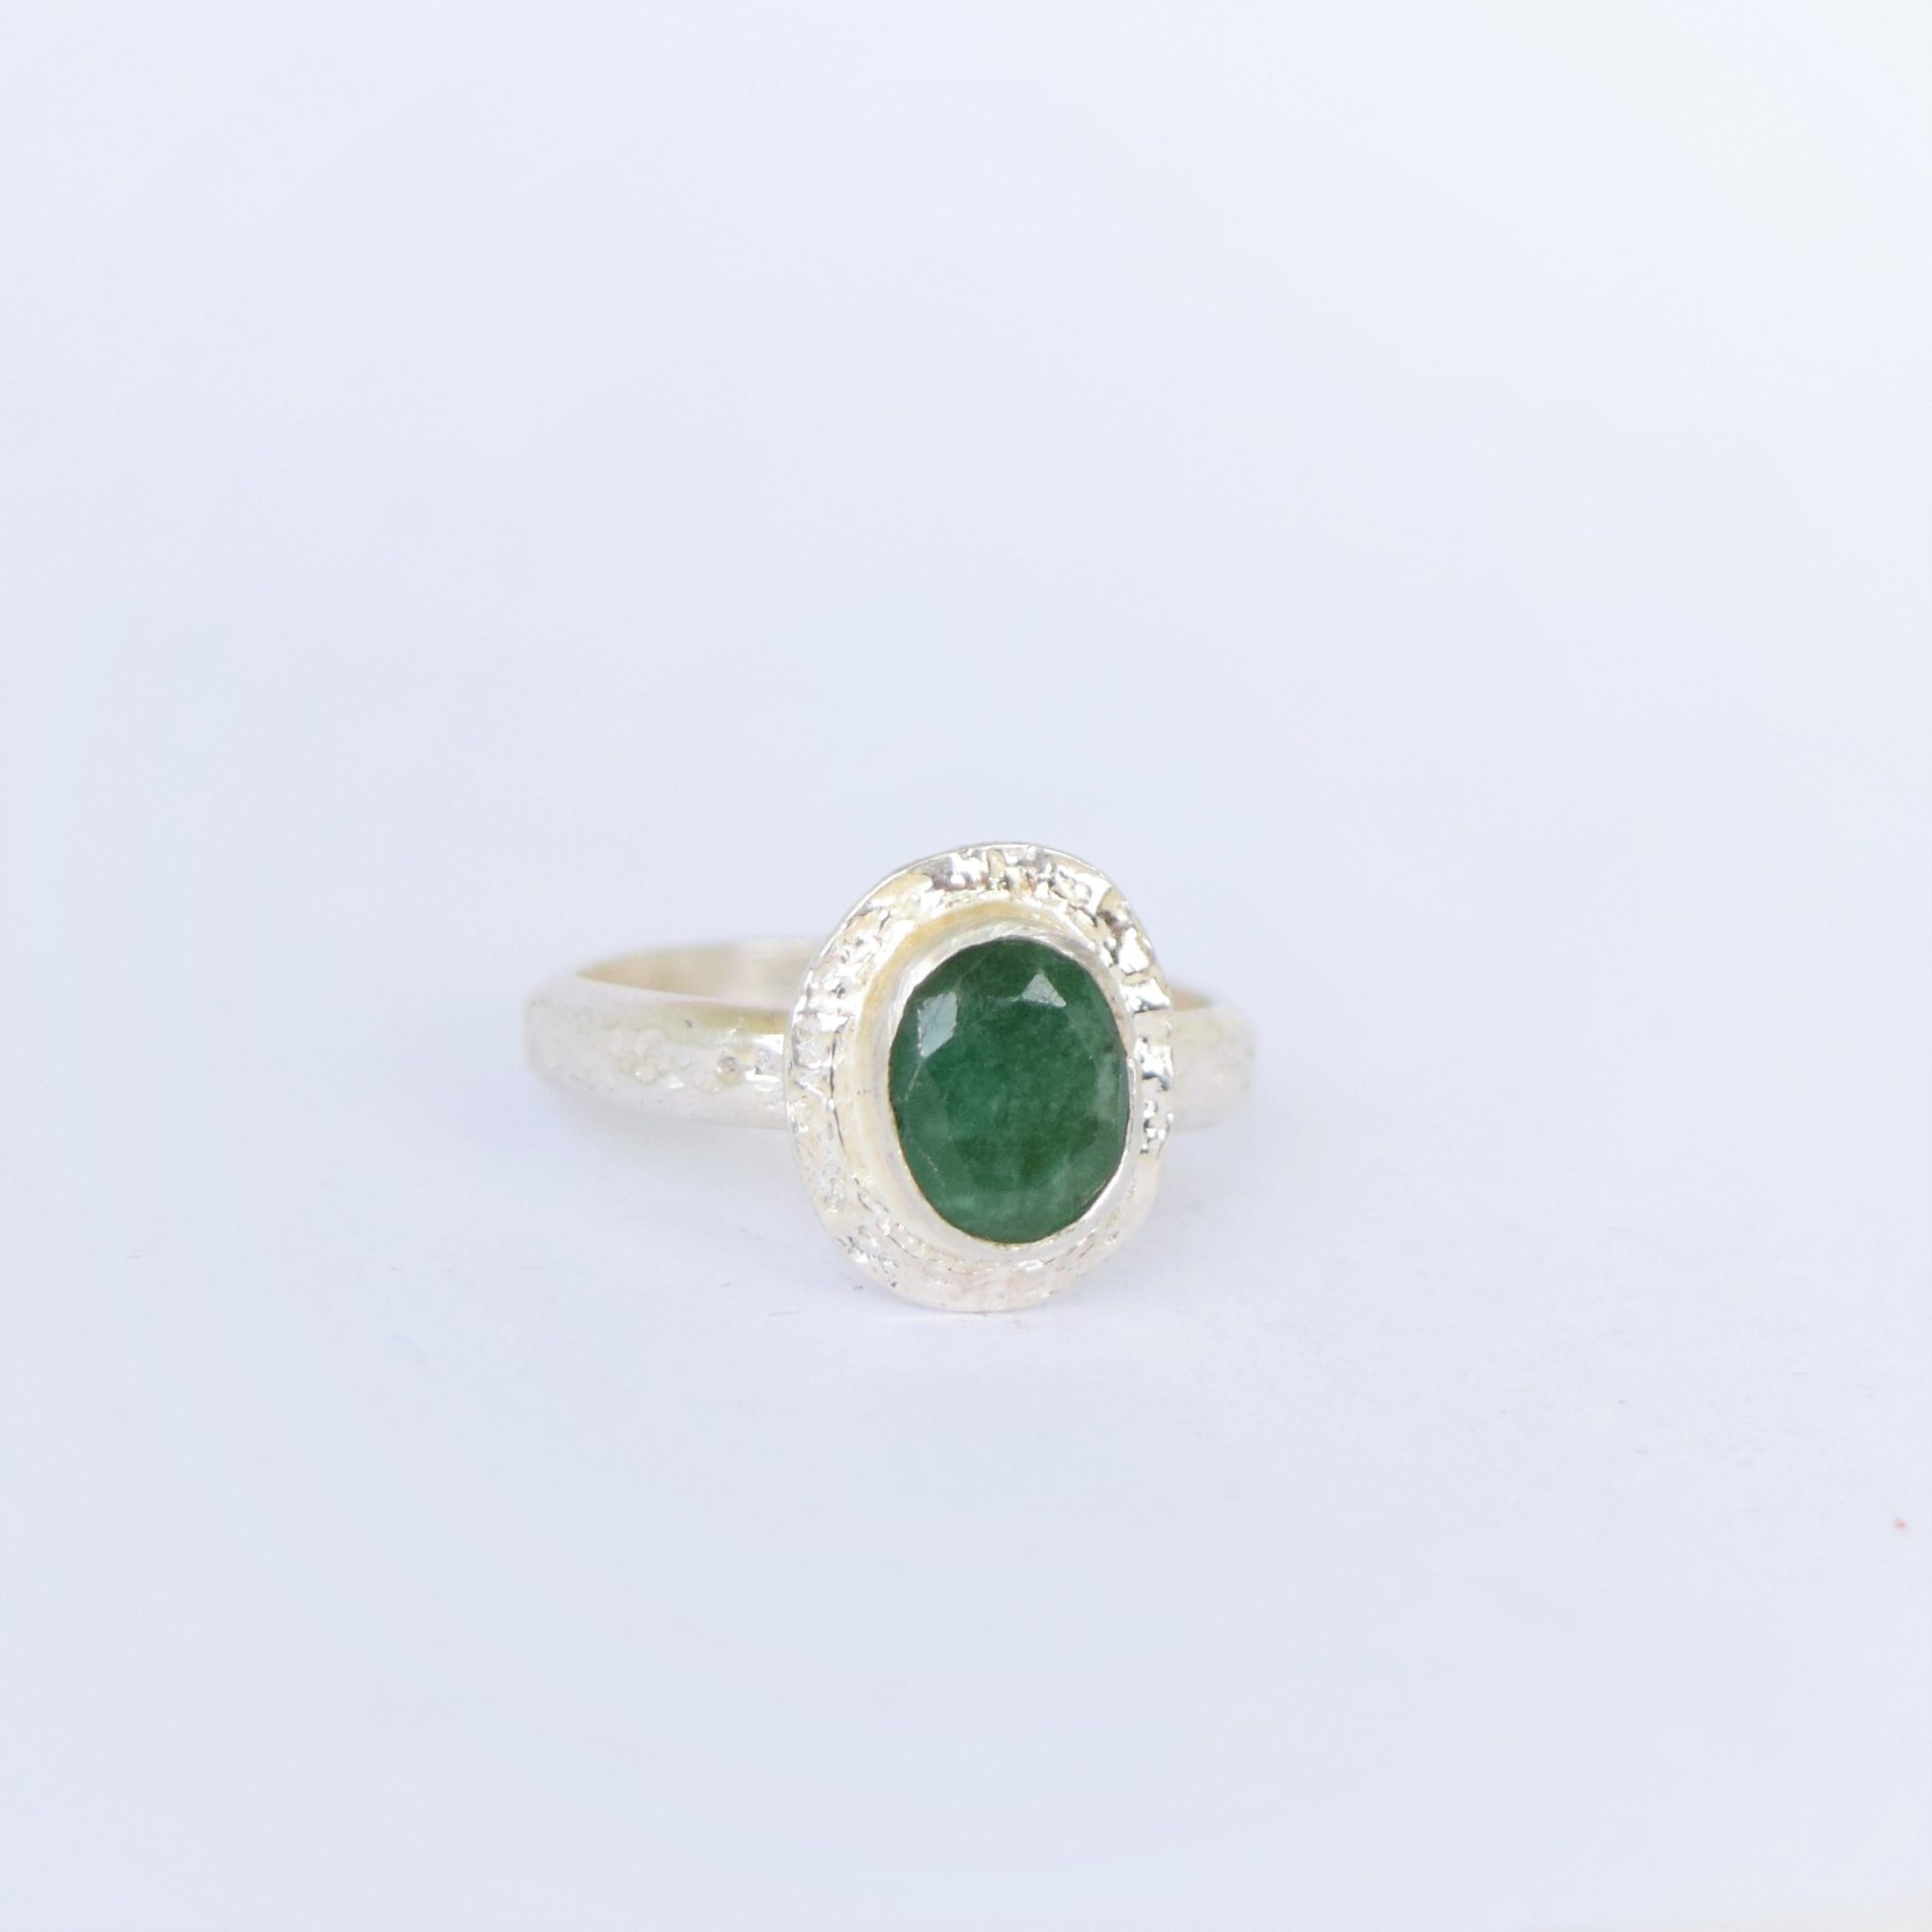 sheffield green wedding rings ring r fashion engagement beautiful emerald hbz anna unique bea bridal